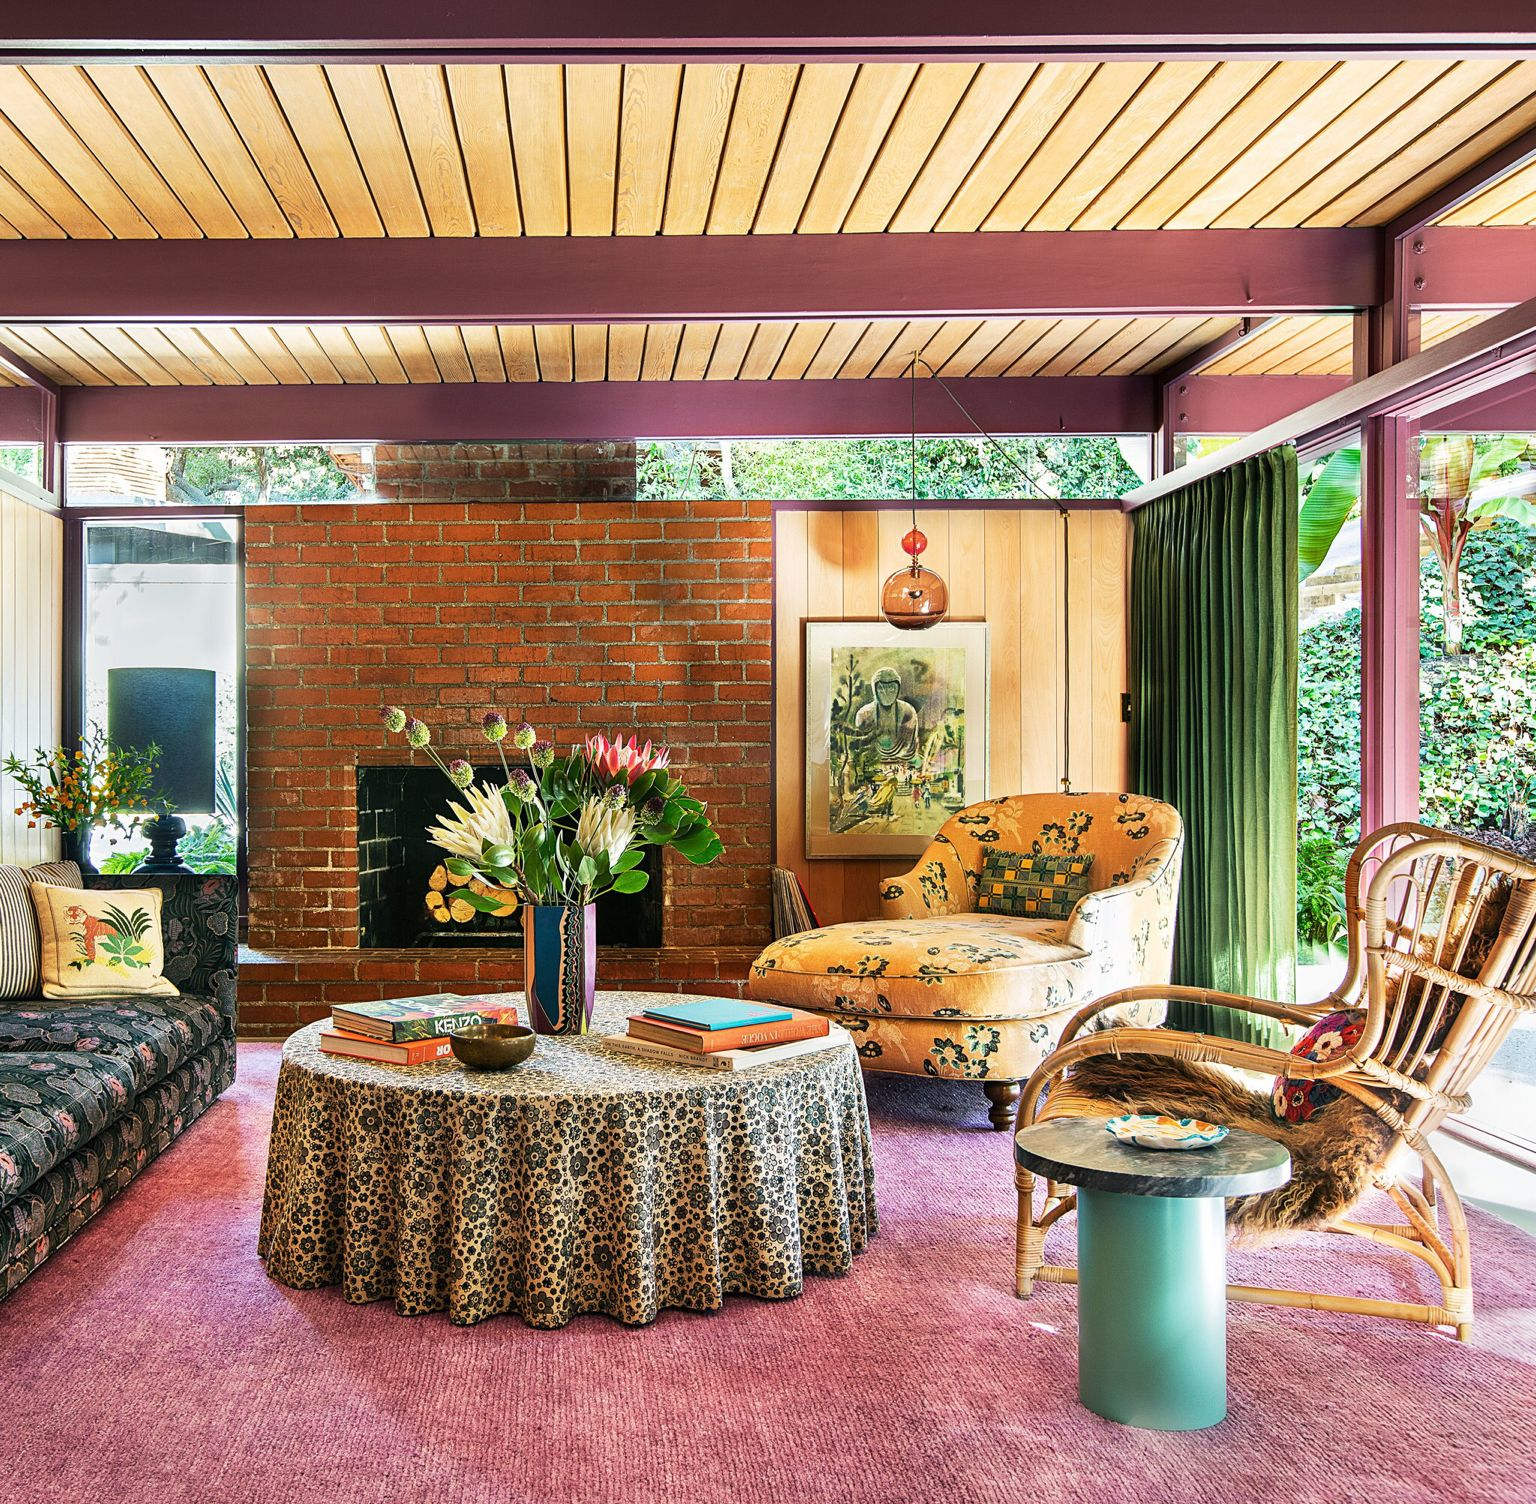 Pin by Melissa Colgan on LIVING ROOMS in 2020 | California ...